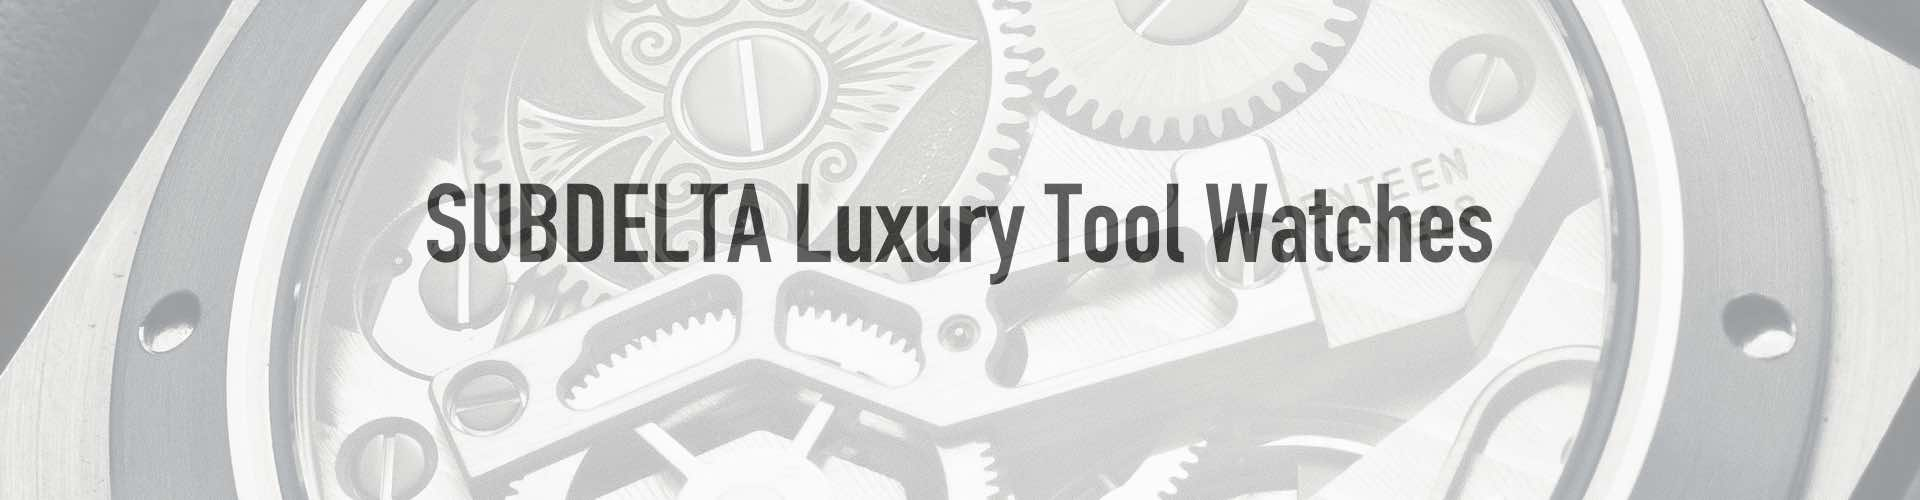 SUBDELTA luxury Tool Watches